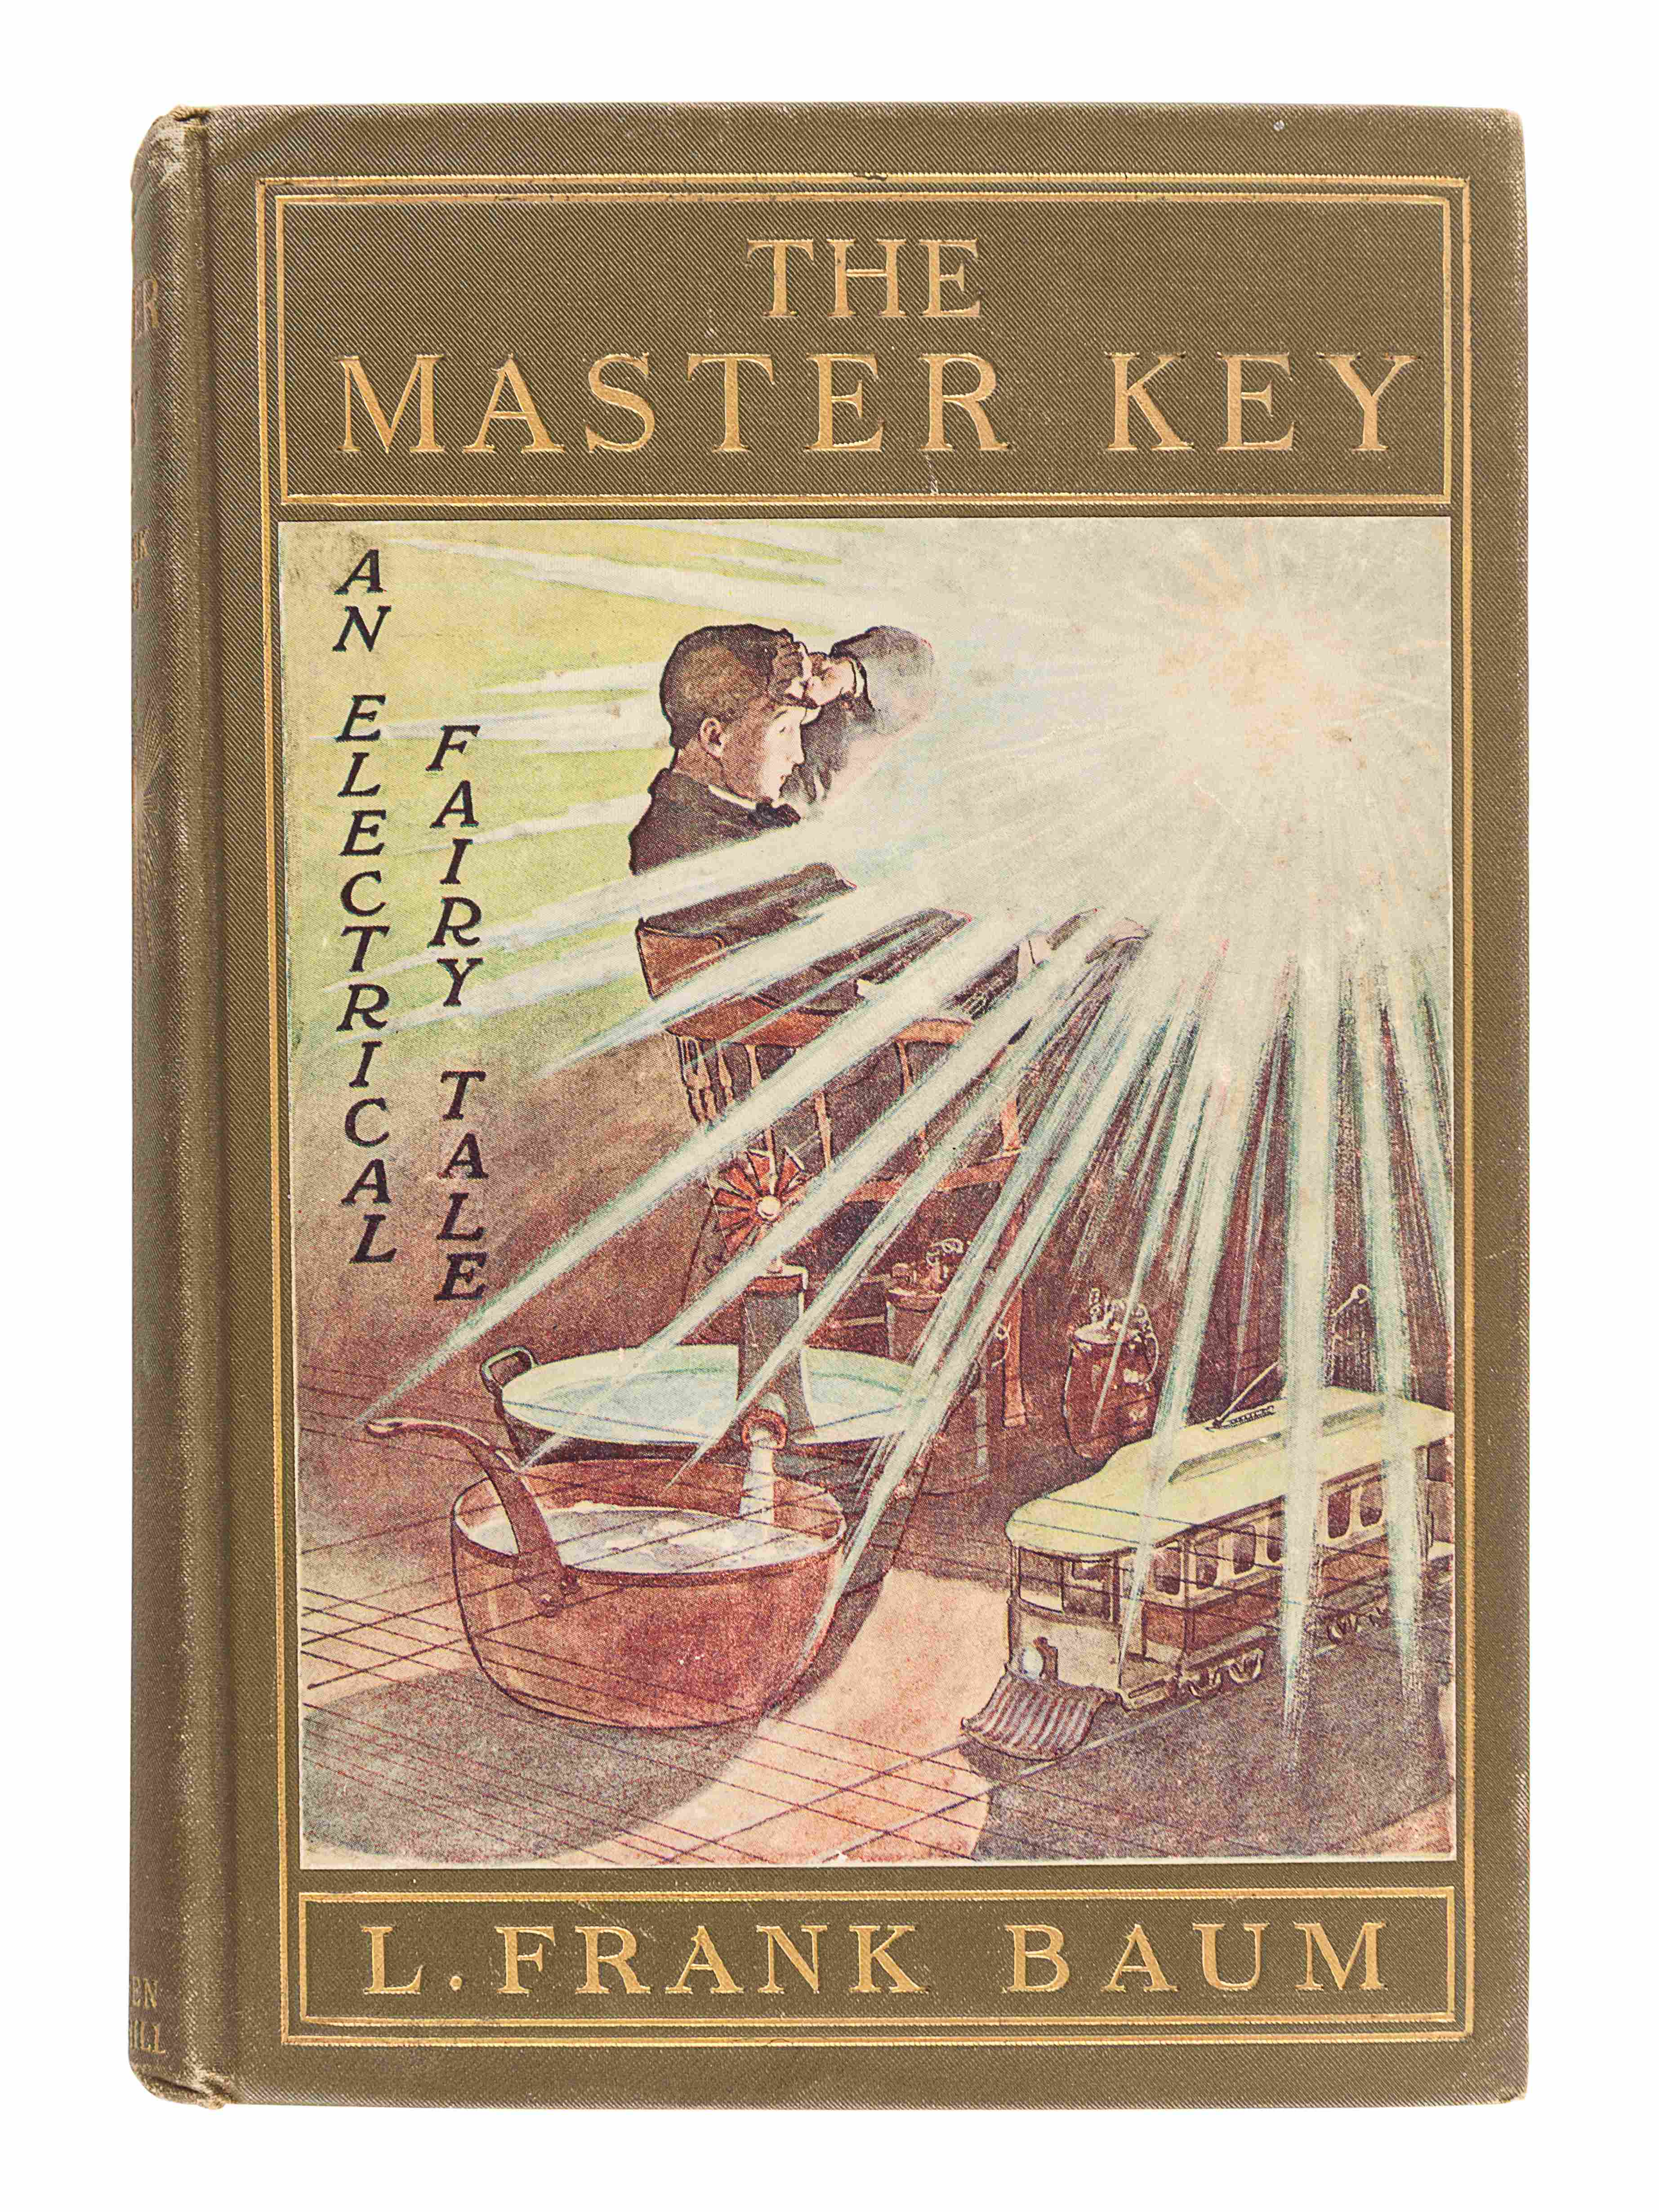 BAUM, L. Frank (1856-1919). The Master Key. An Electrical Fairy Tale. Indianapolis: The Bowen-Merril